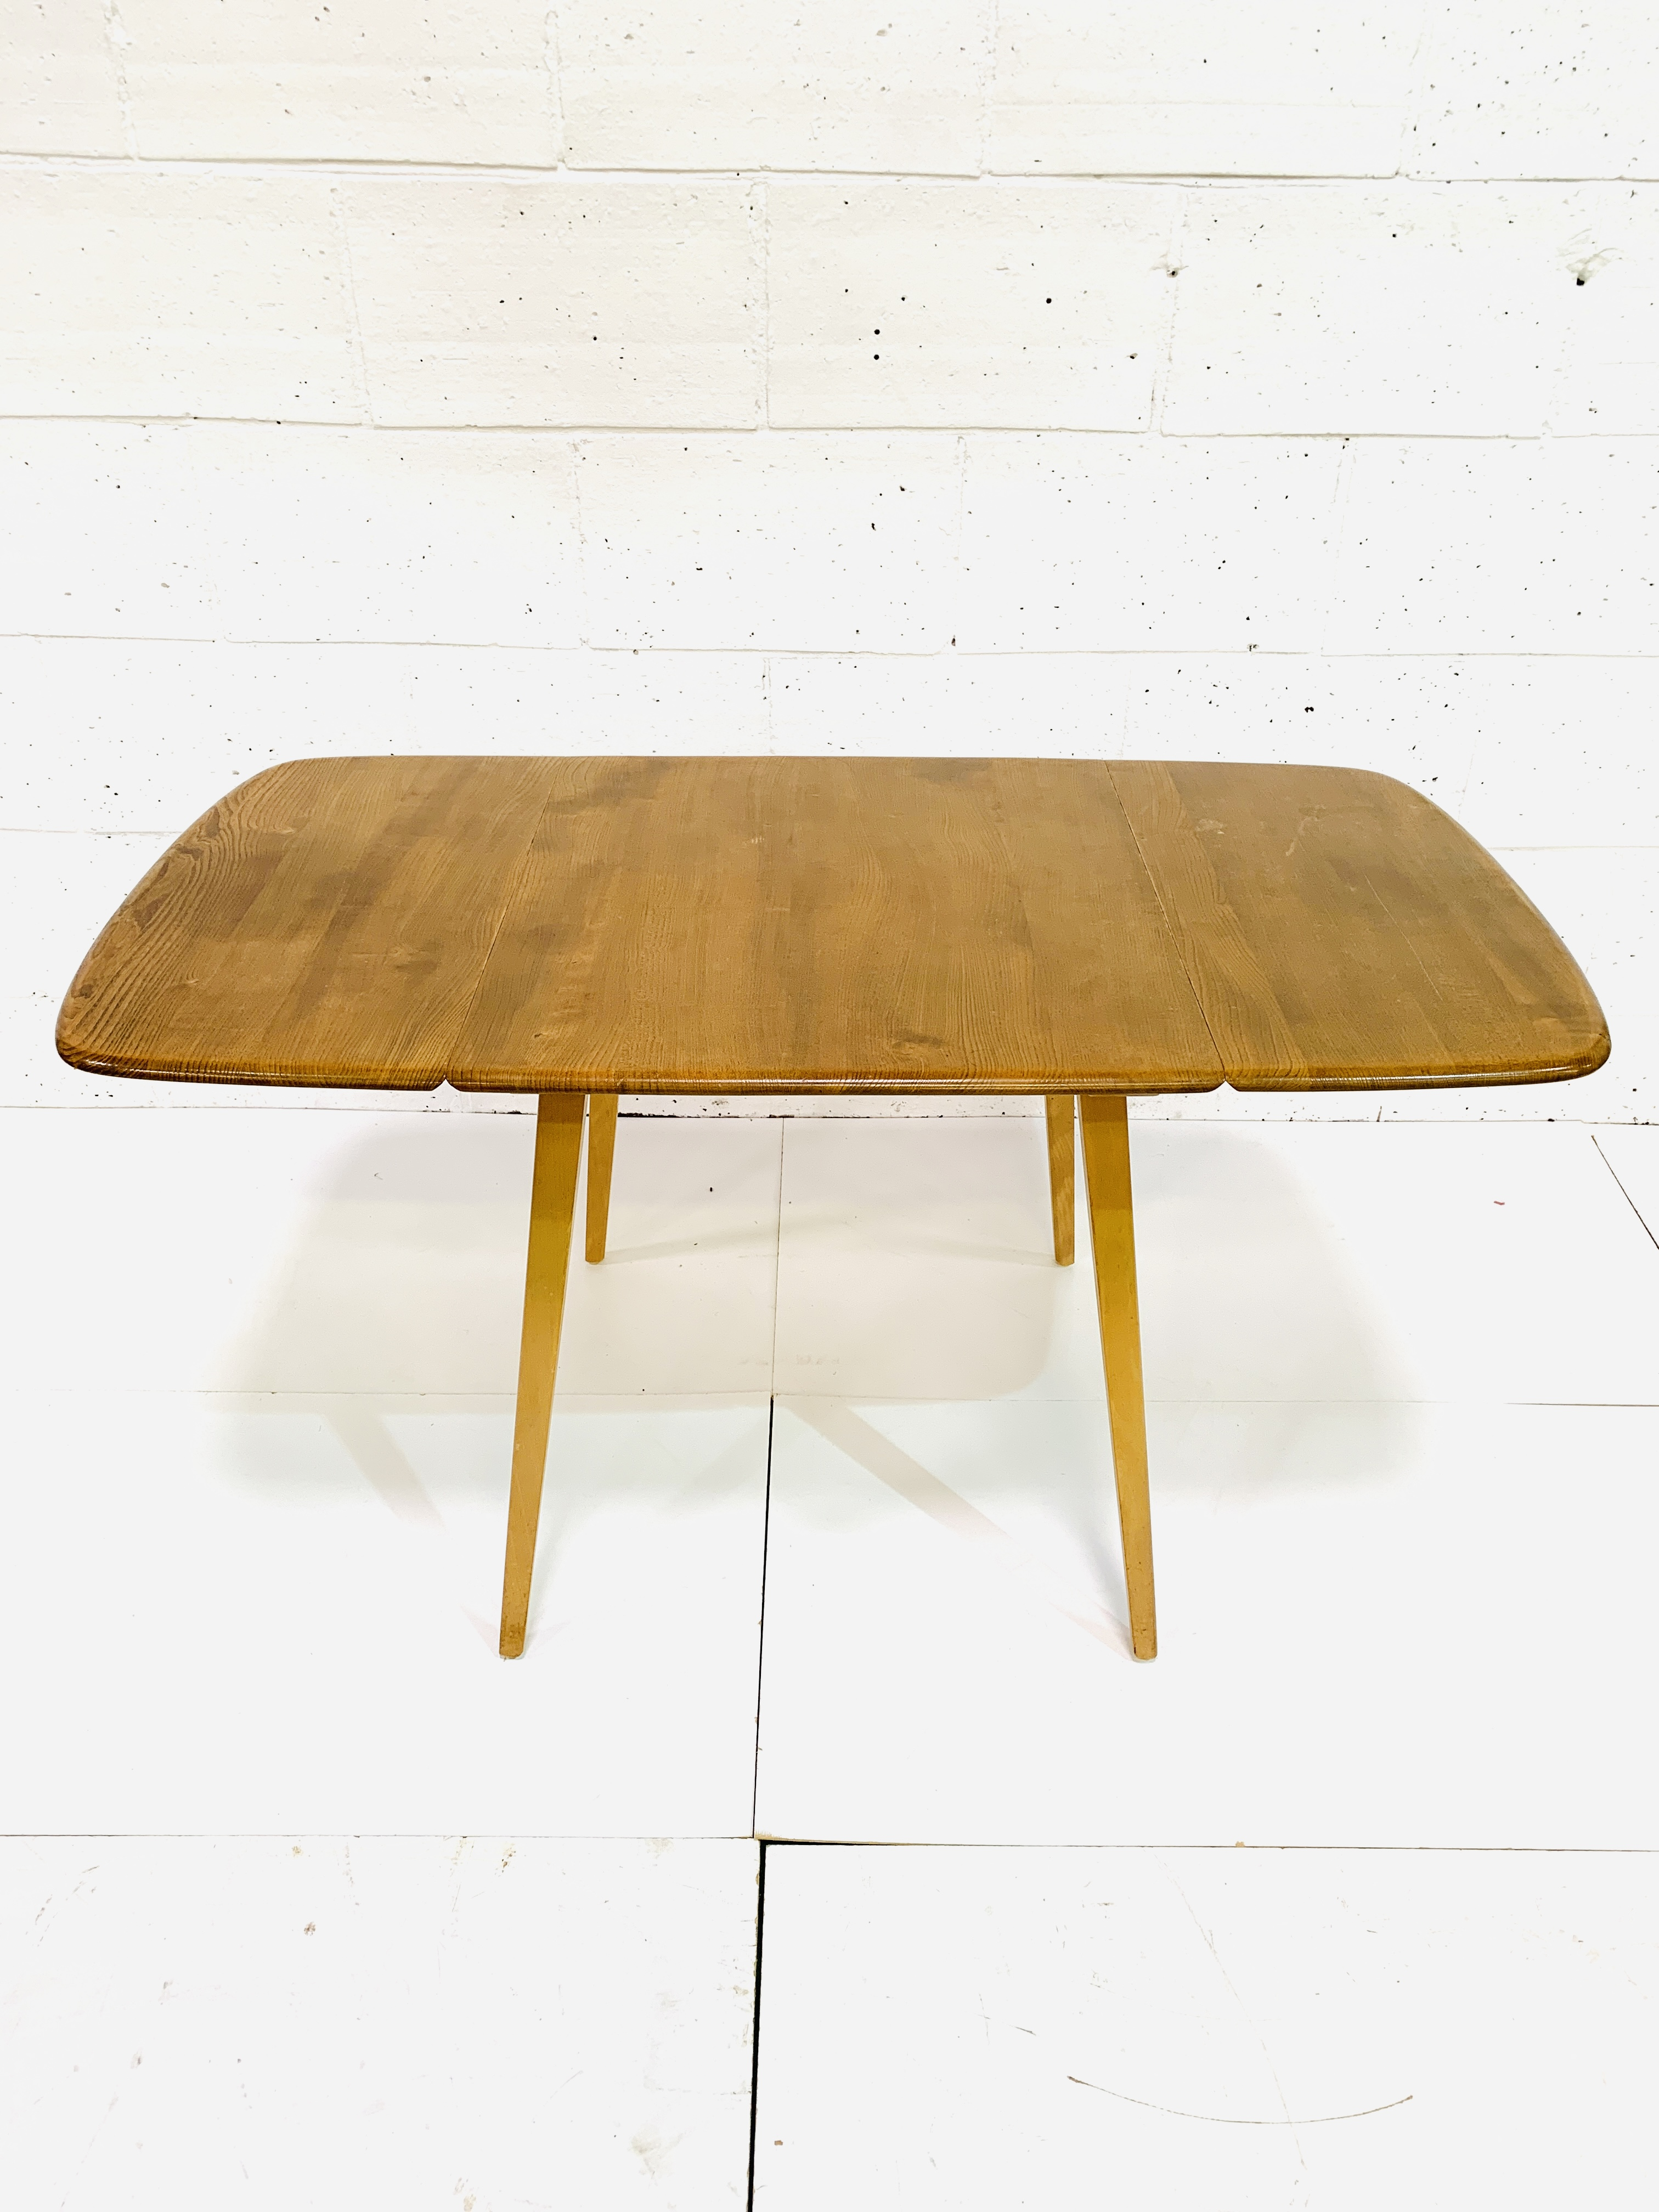 Ercol dropside table - Image 2 of 7